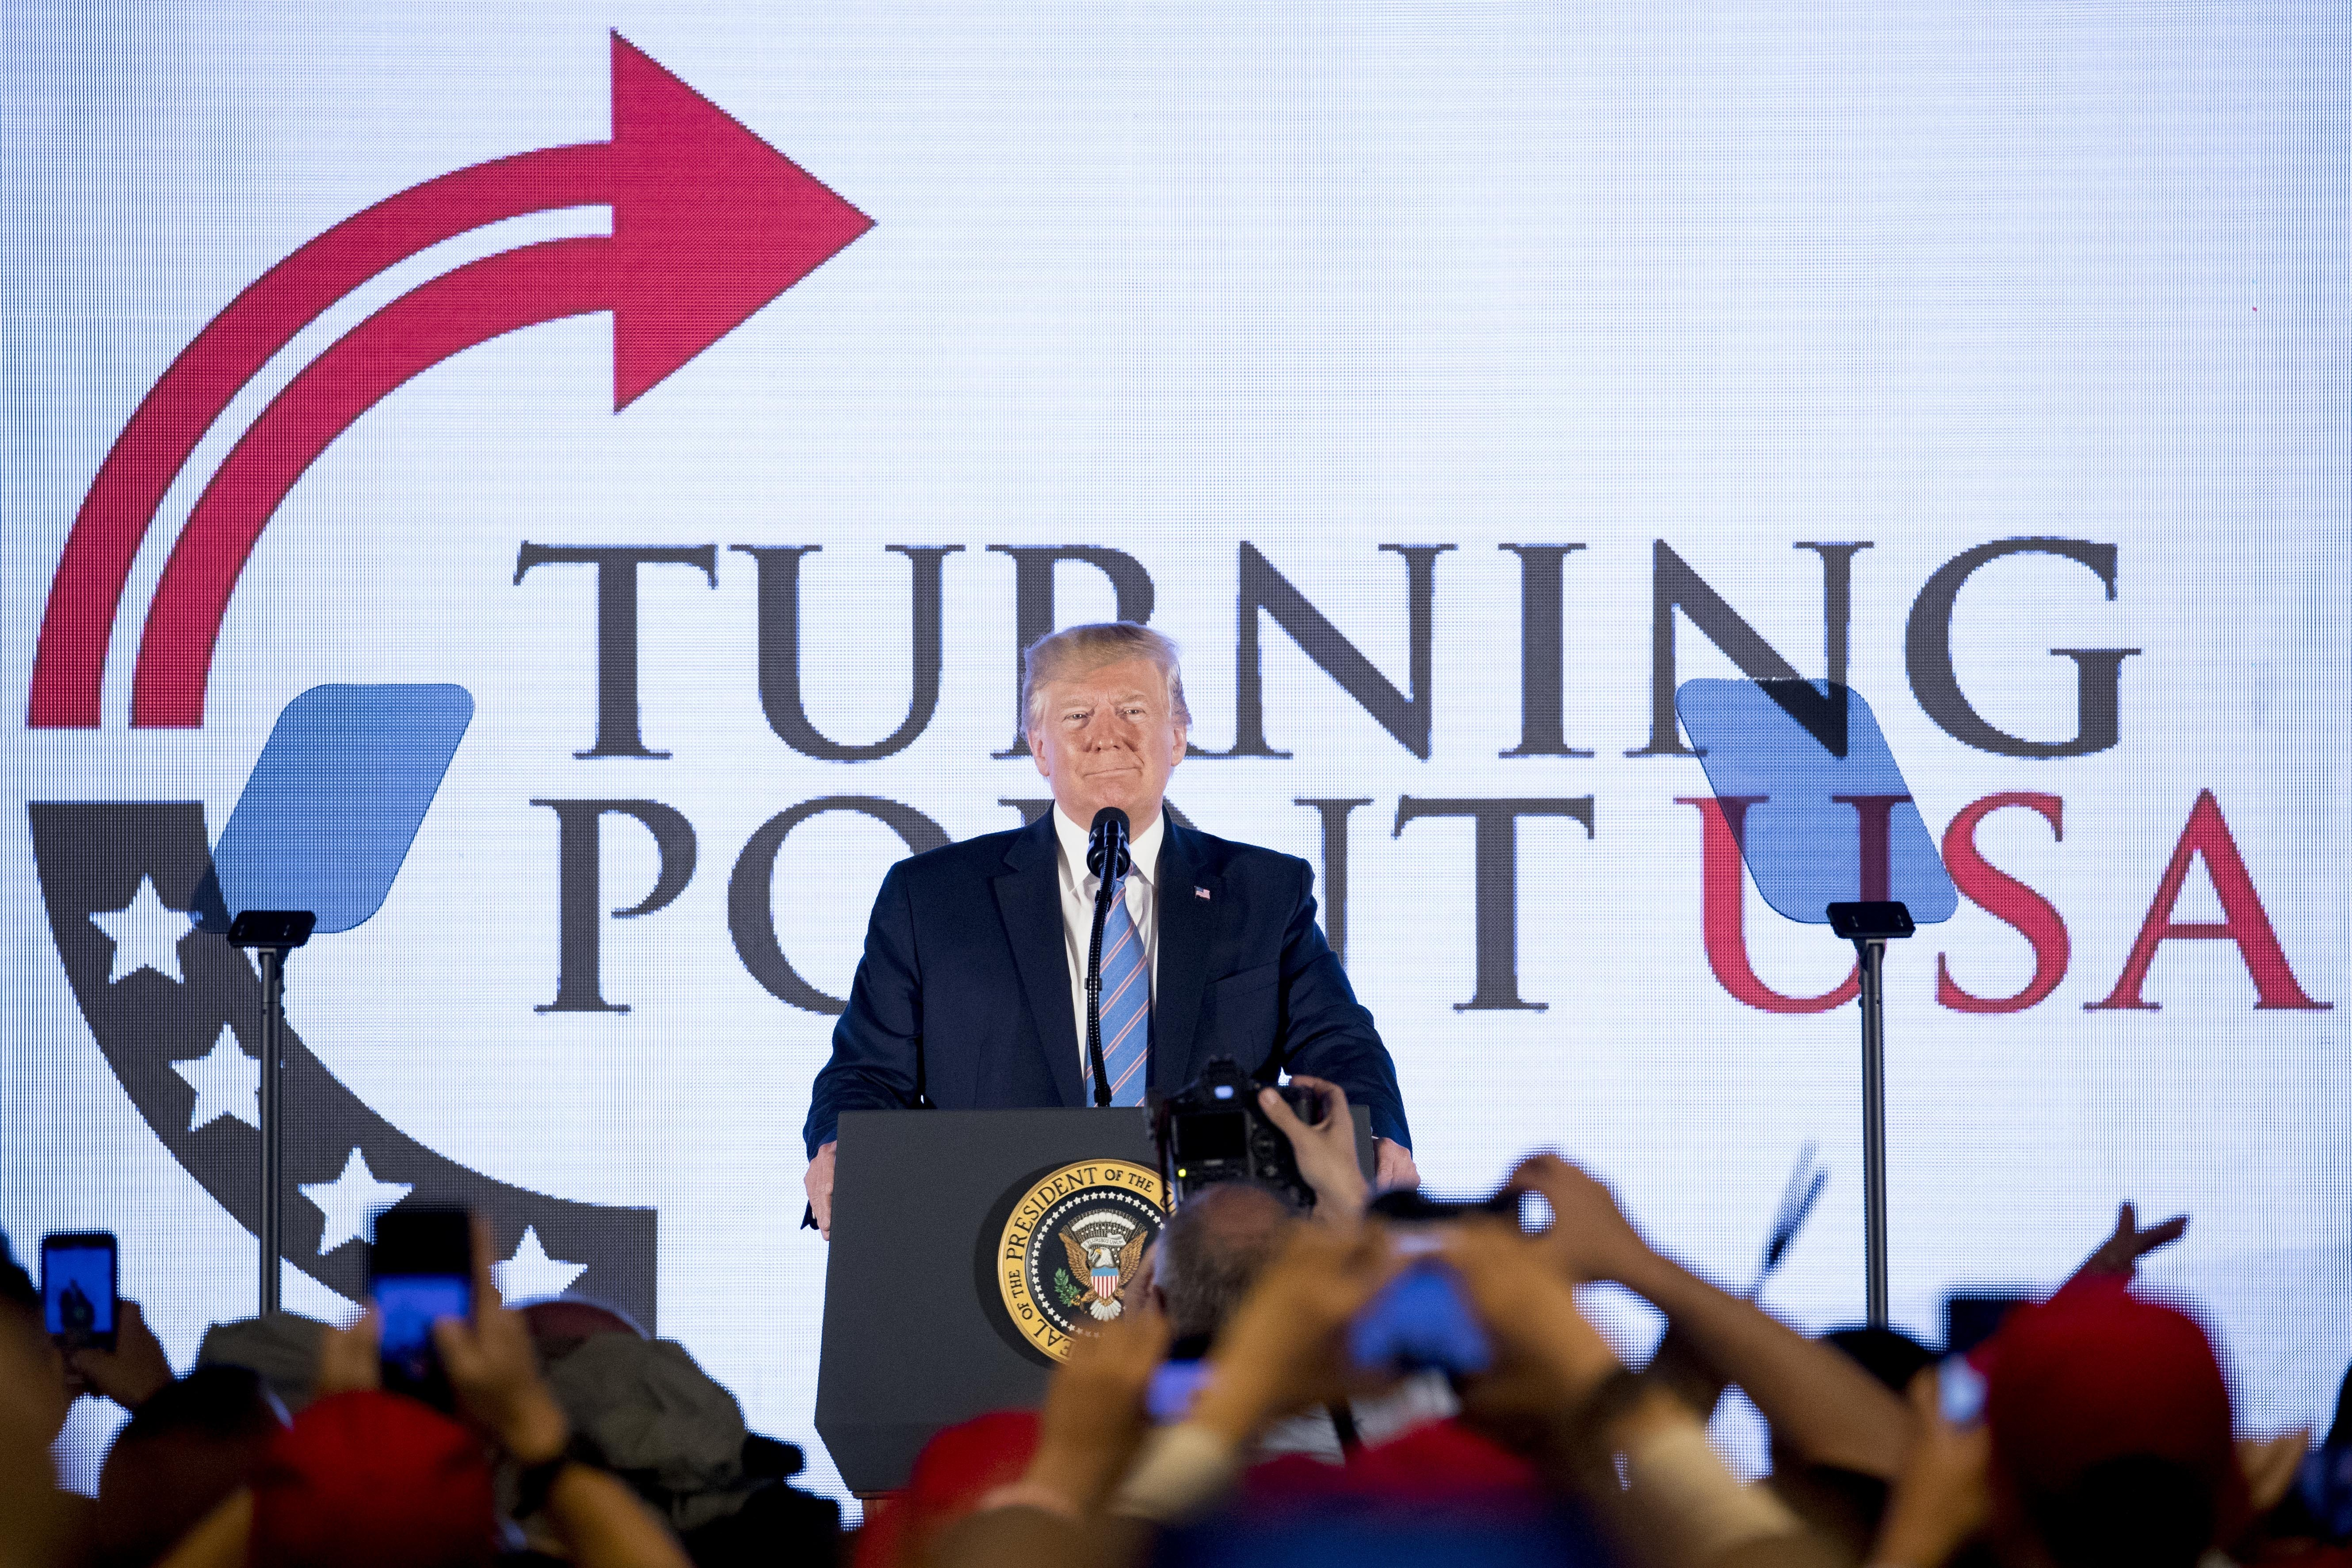 President Donald Trump takes the stage at Turning Point USA Teen Student Action Summit at the Marriott Marquis in Washington, Tuesday, July 23, 2019. (AP Photo/Andrew Harnik)